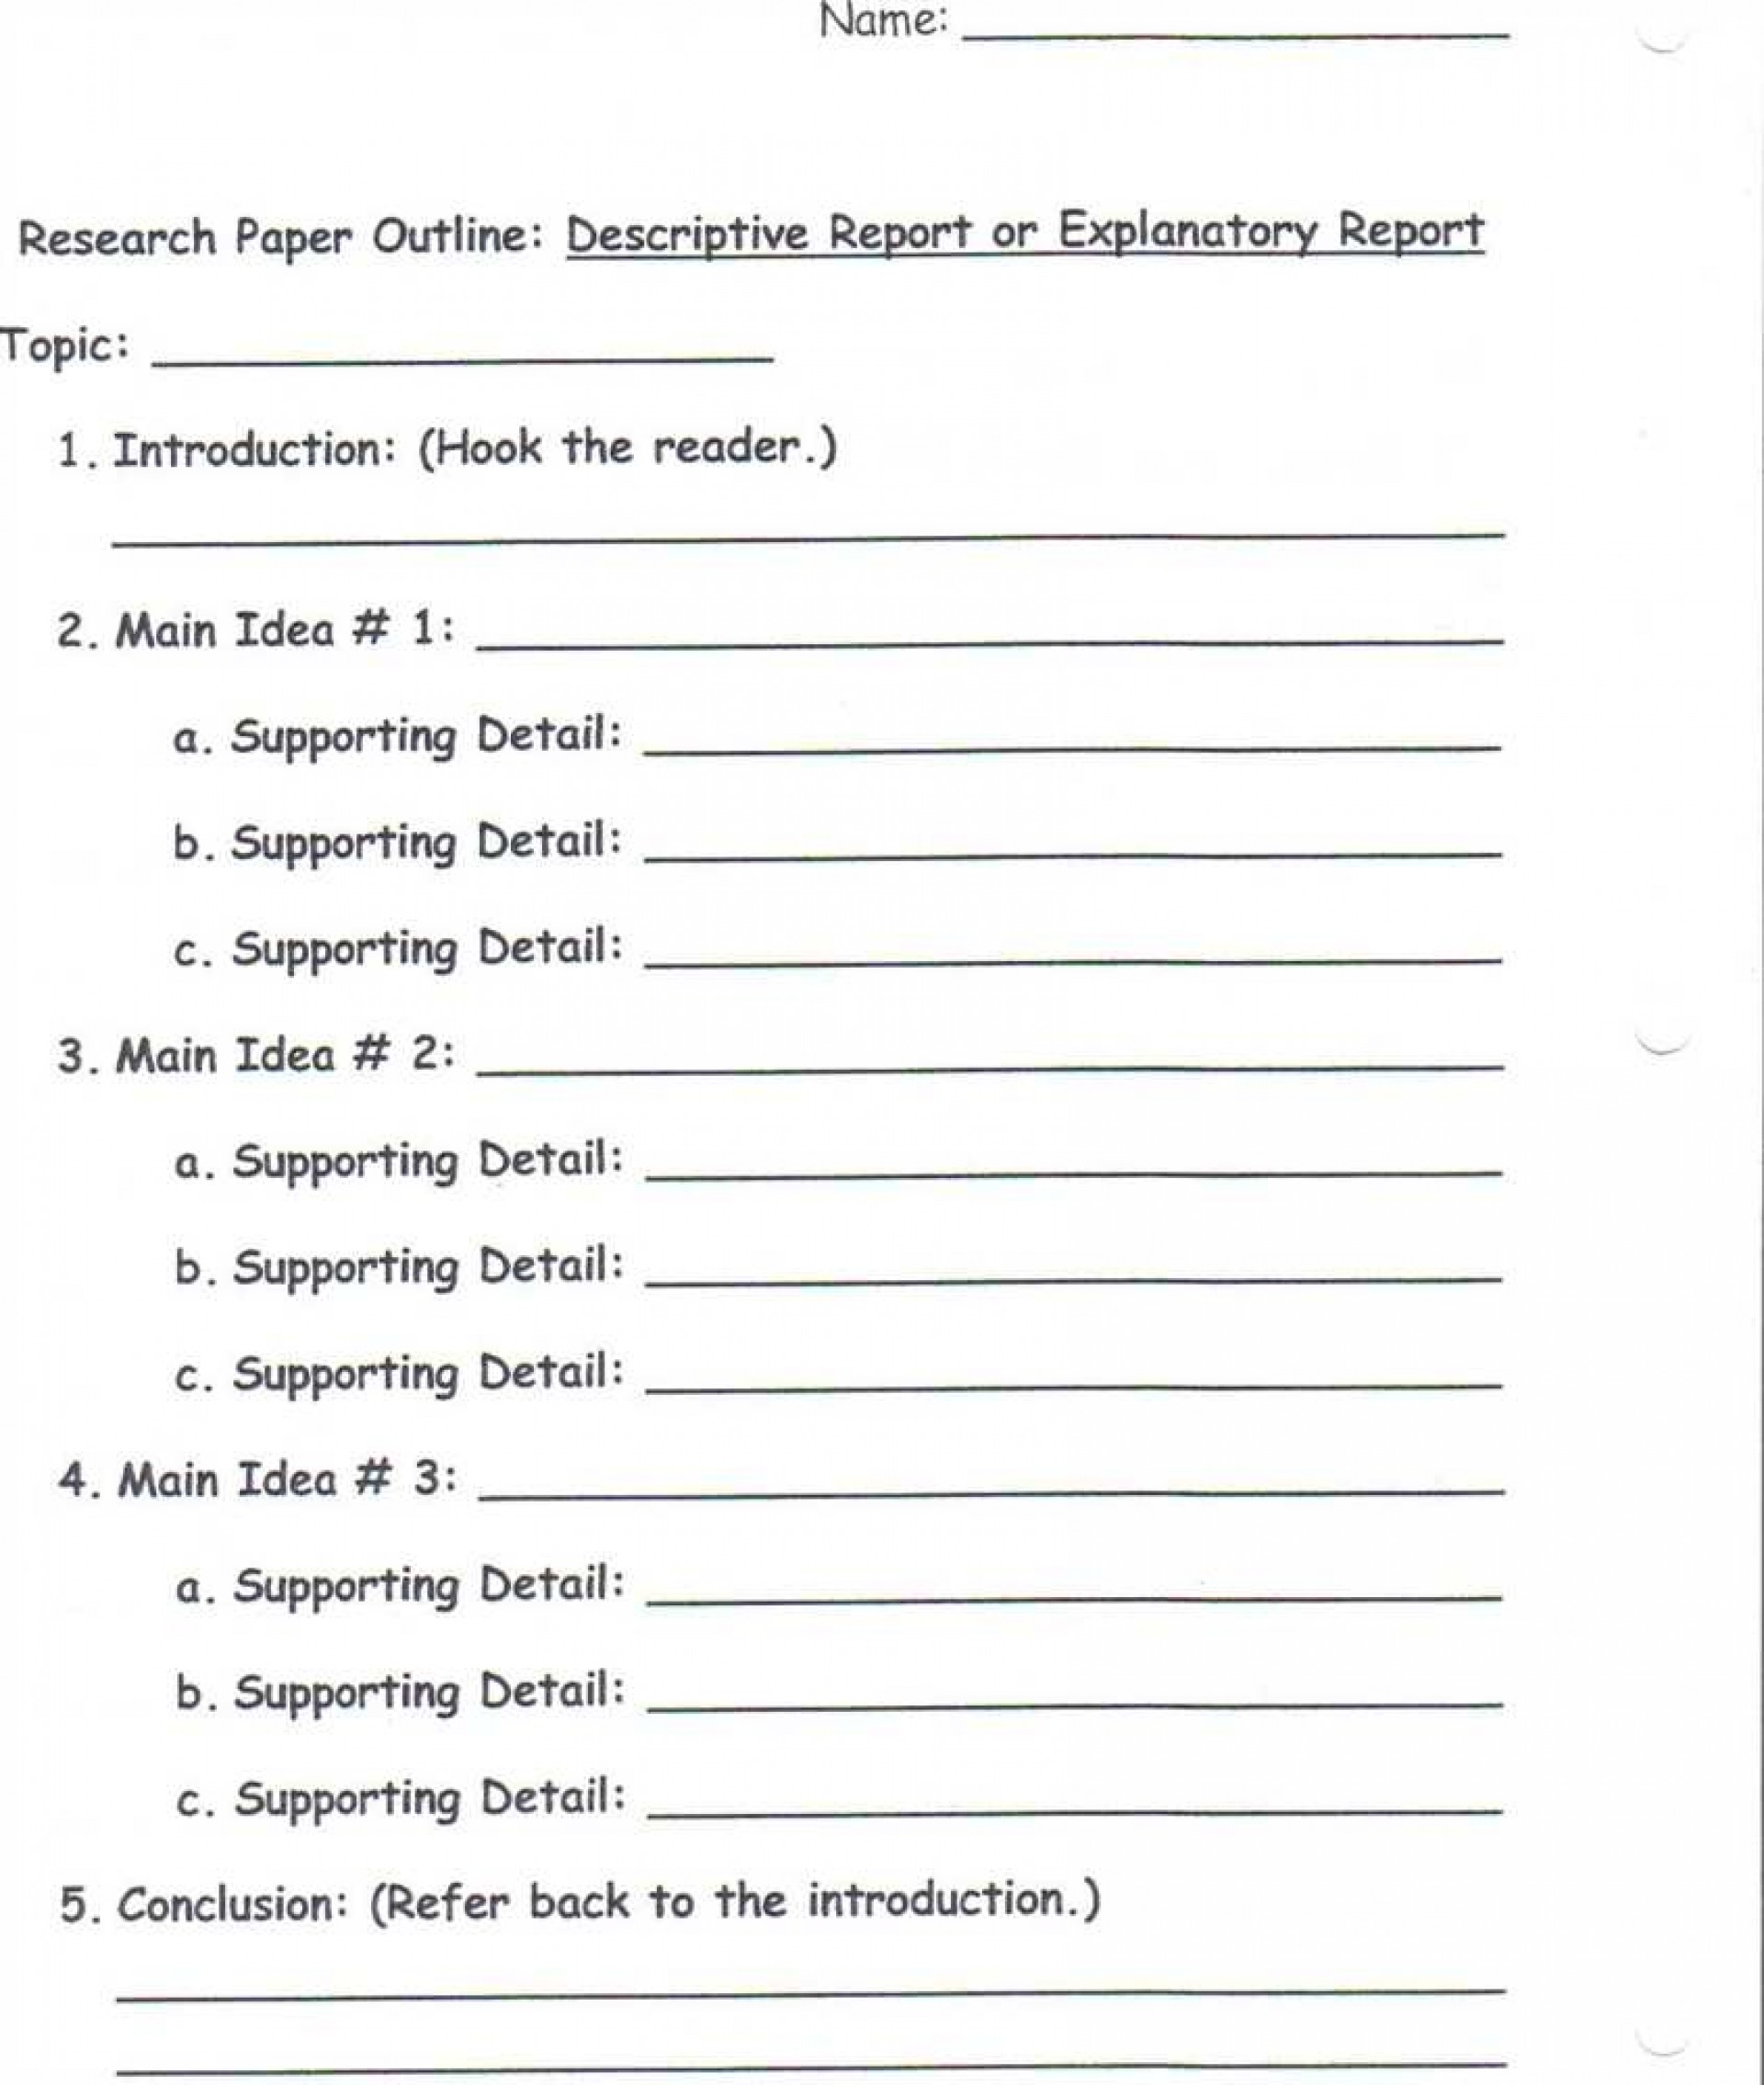 003 Observation Essays Descriptive Essay Outline For Ethnogr Ethnographic Outstanding Examples Template Pdf About A Person 1920